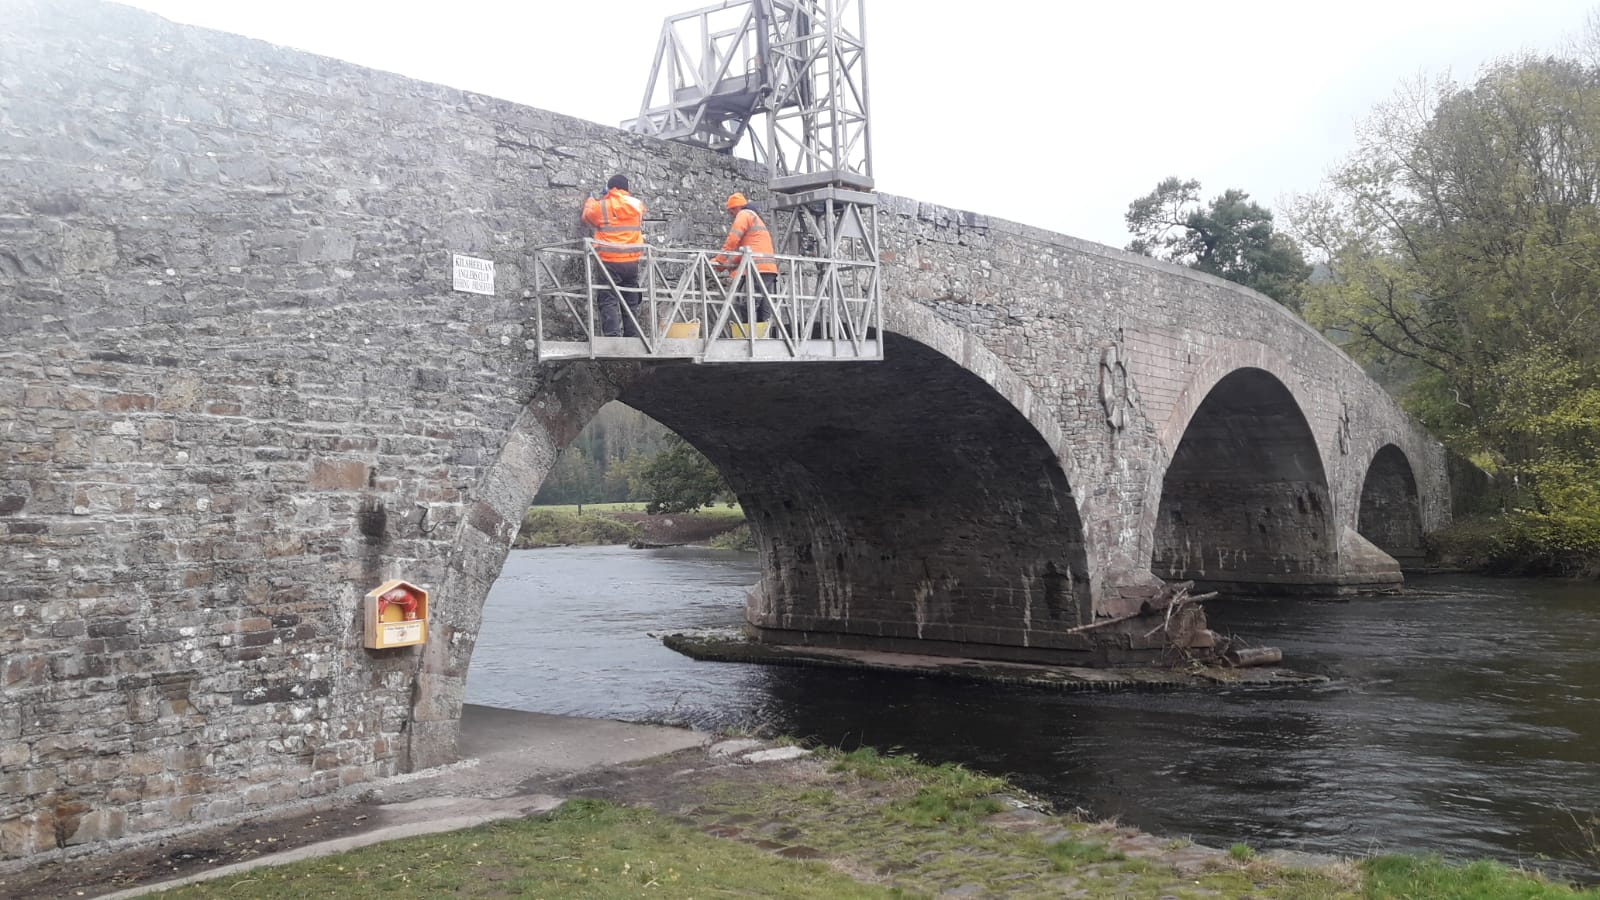 Bridge Inspection Unit